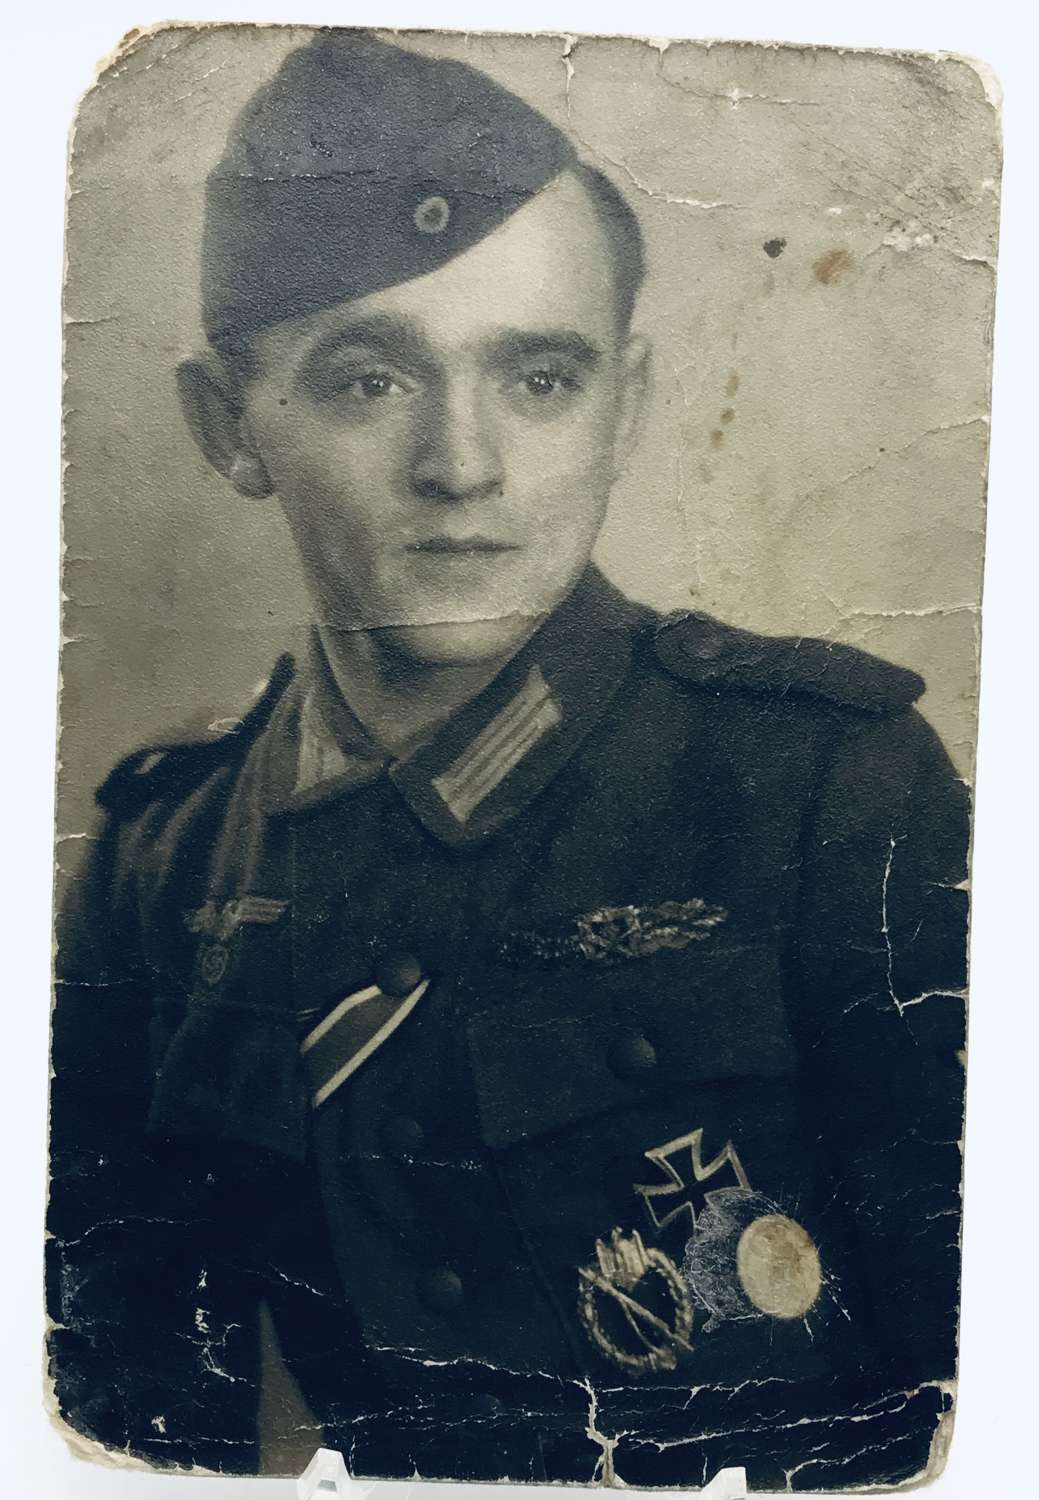 Image of highly decorated German soldier